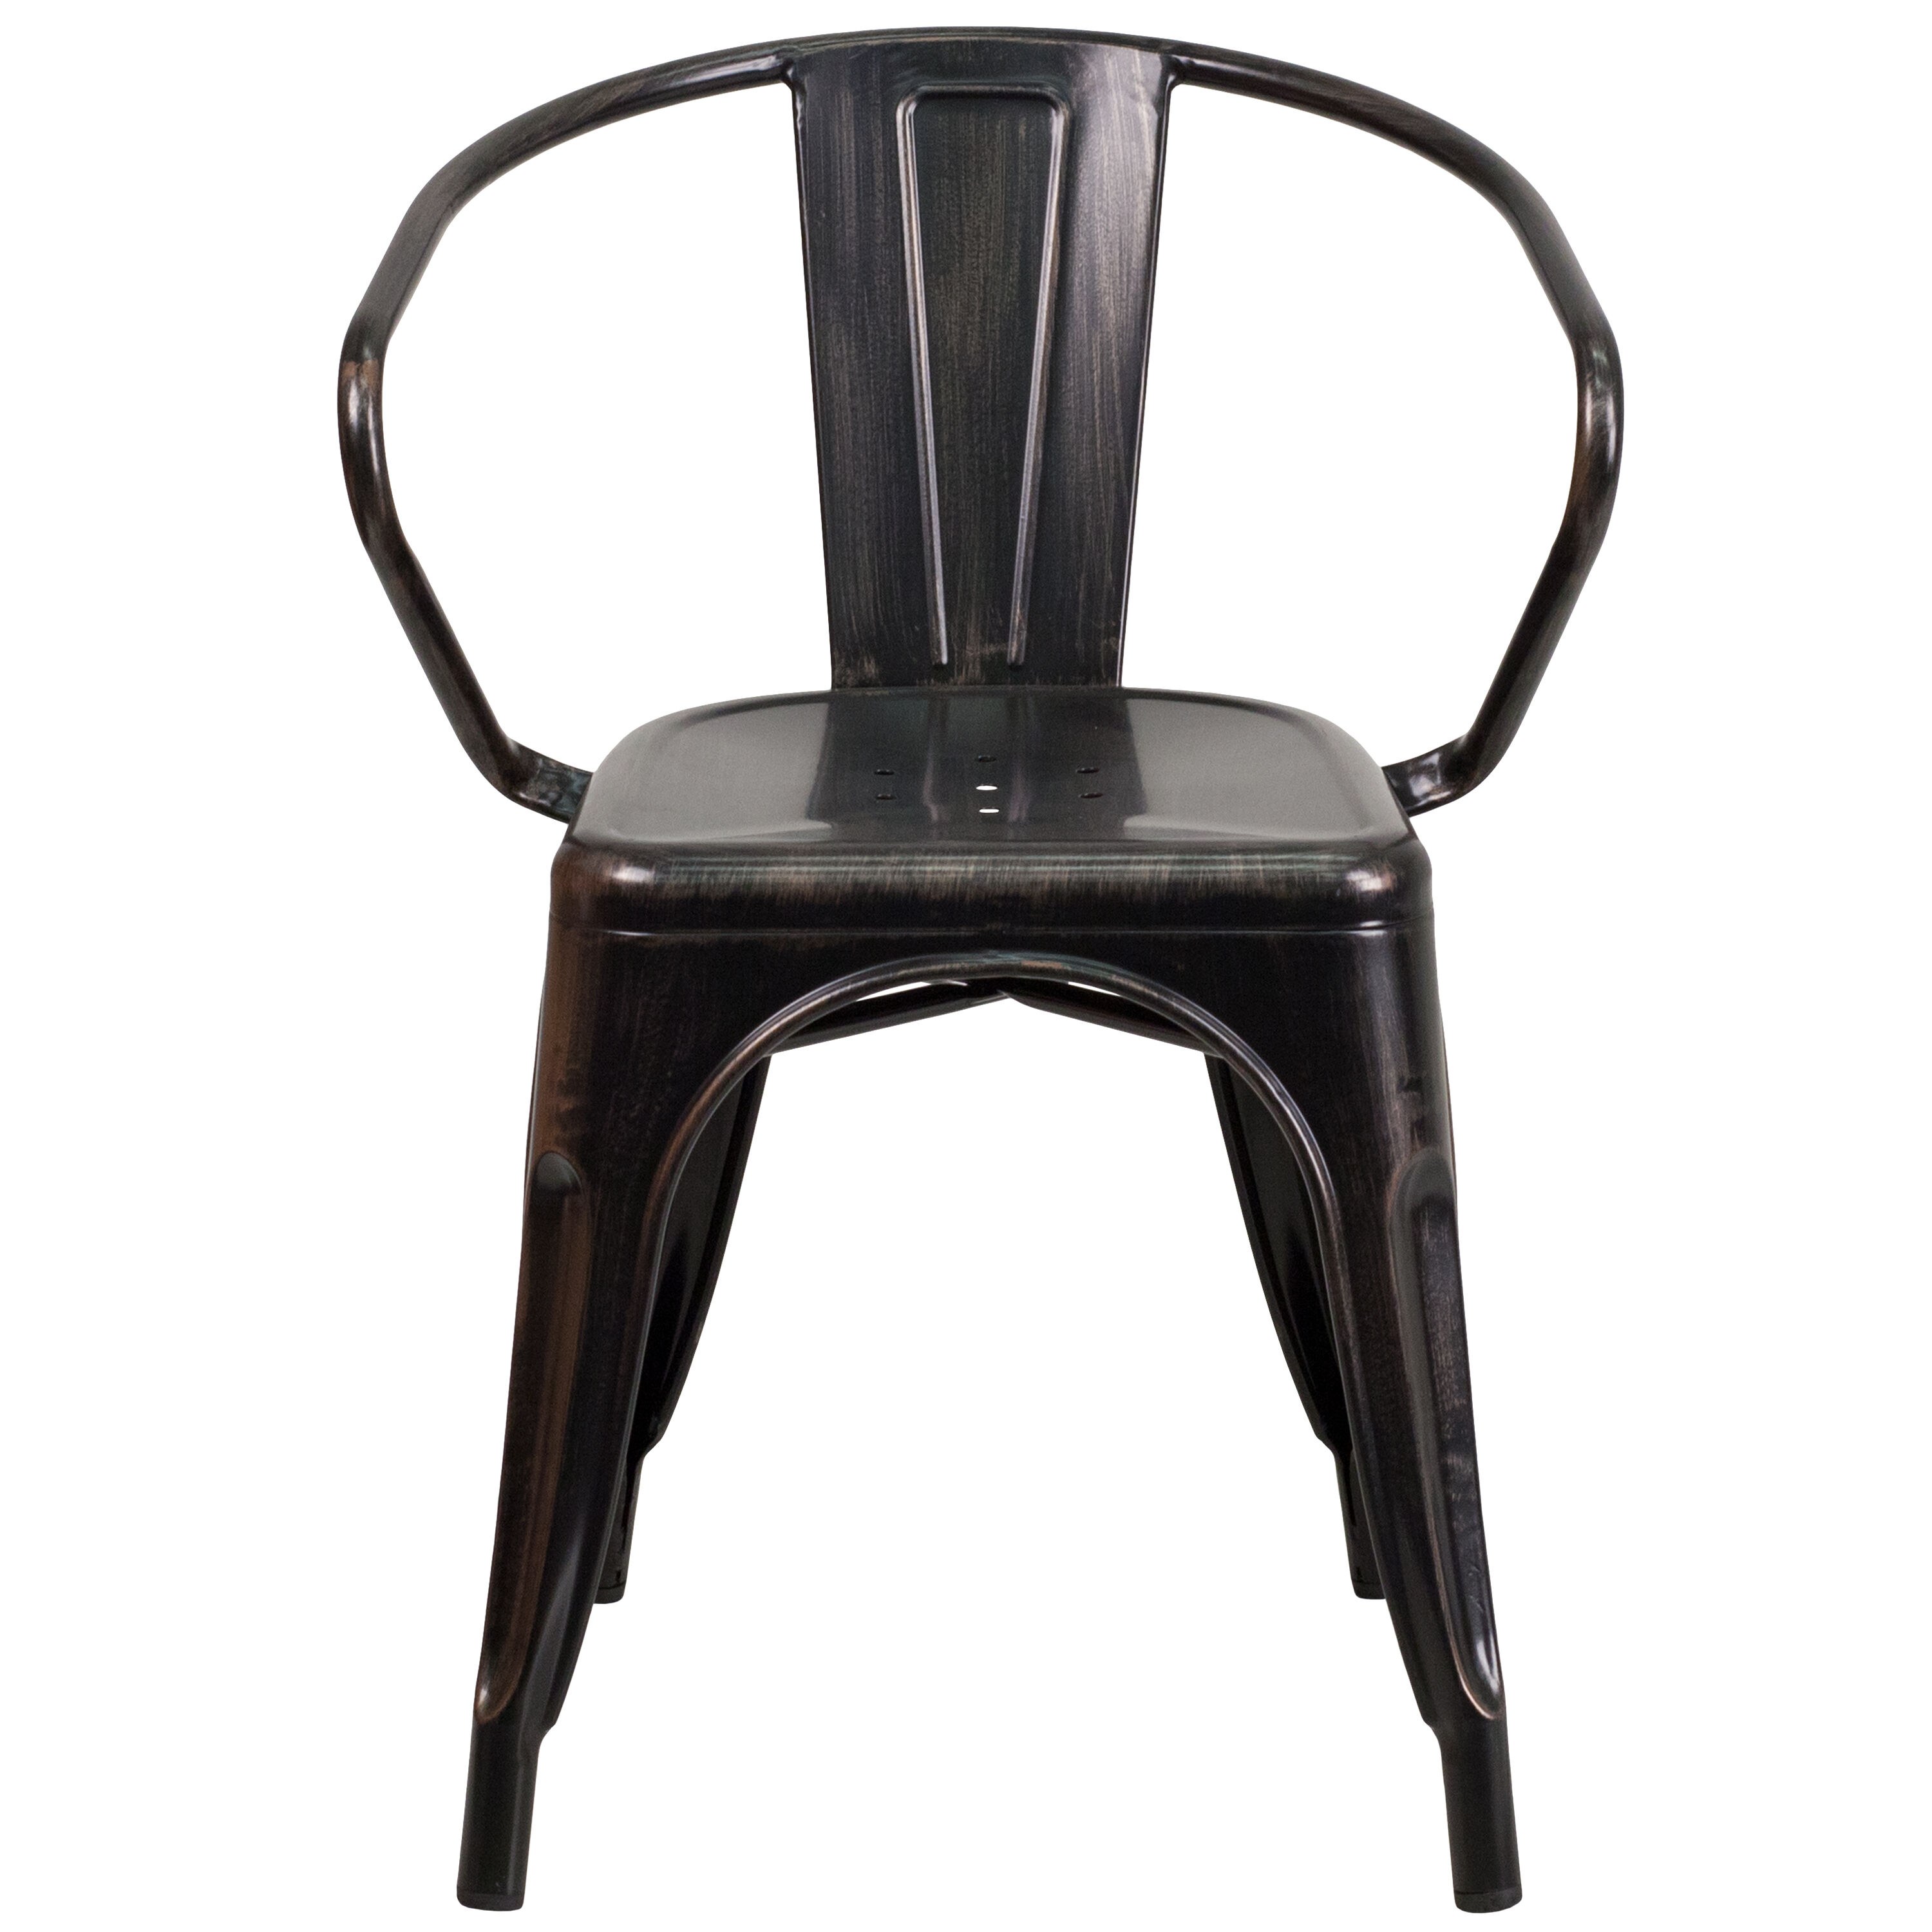 black metal outdoor chairs chair covers for white folding with arms ch 31270 bq gg bizchair